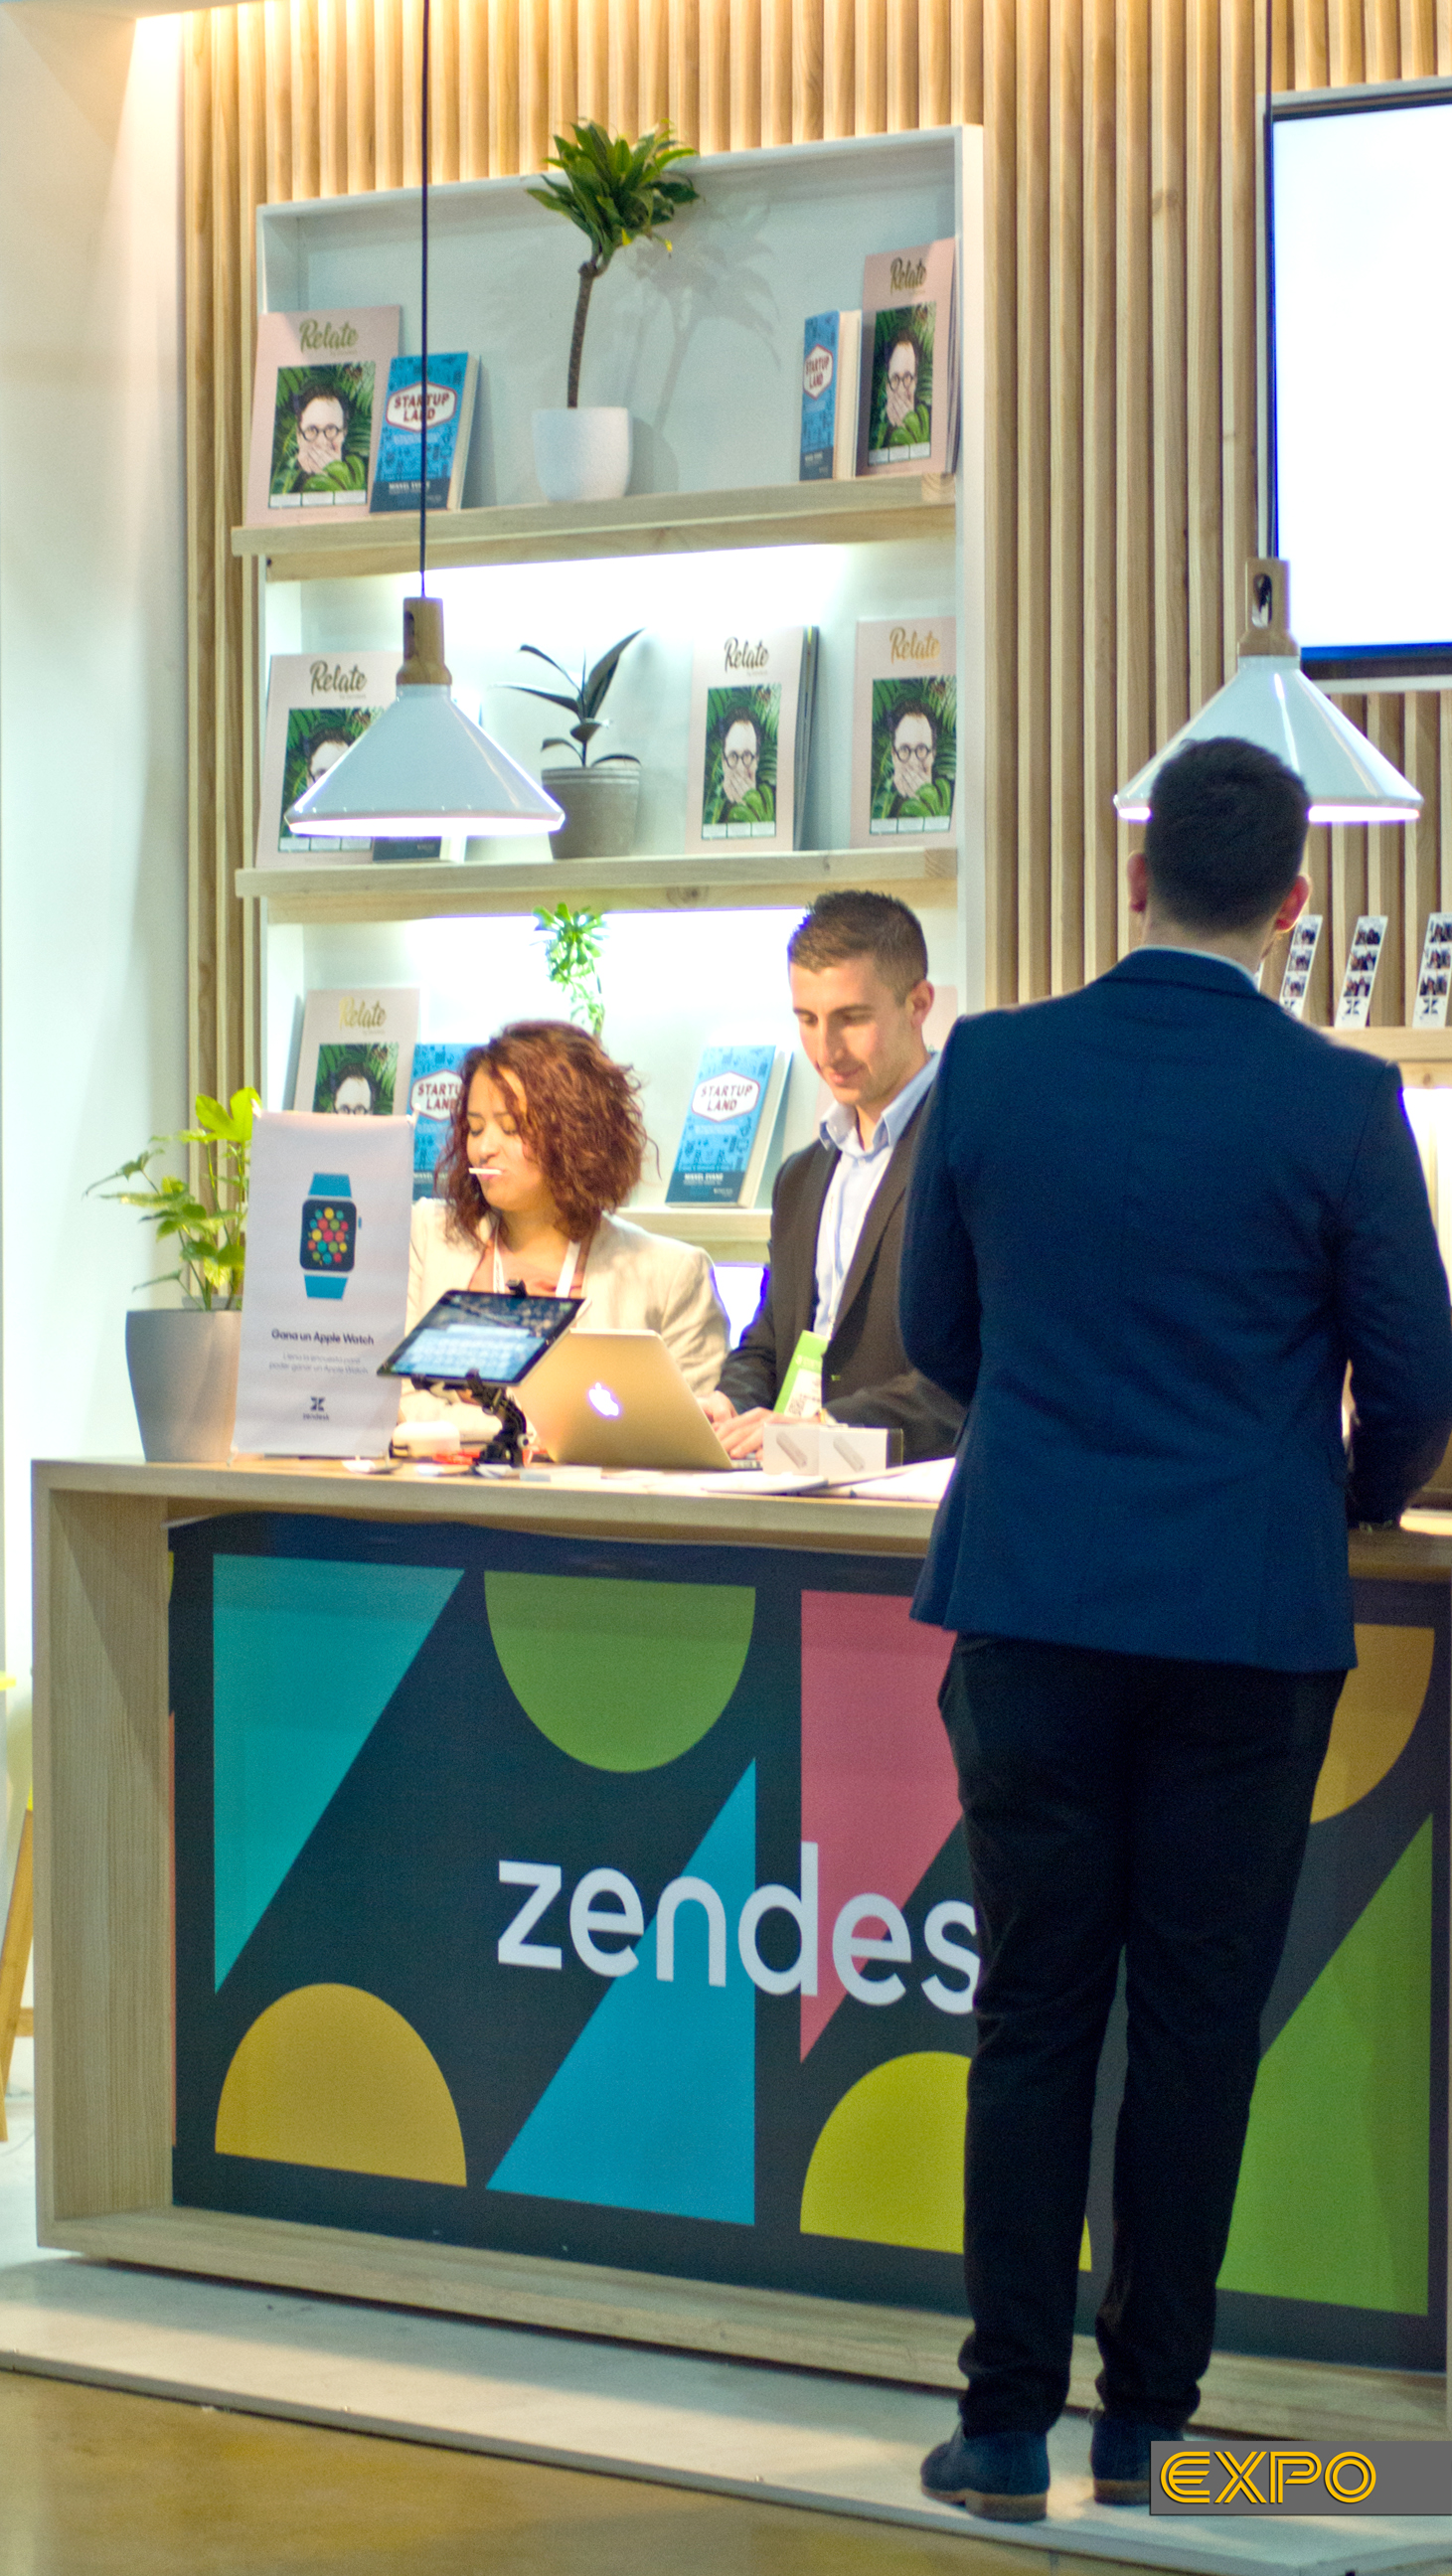 Expo_-_América_Digital_2017_-_Zendesk_(12)